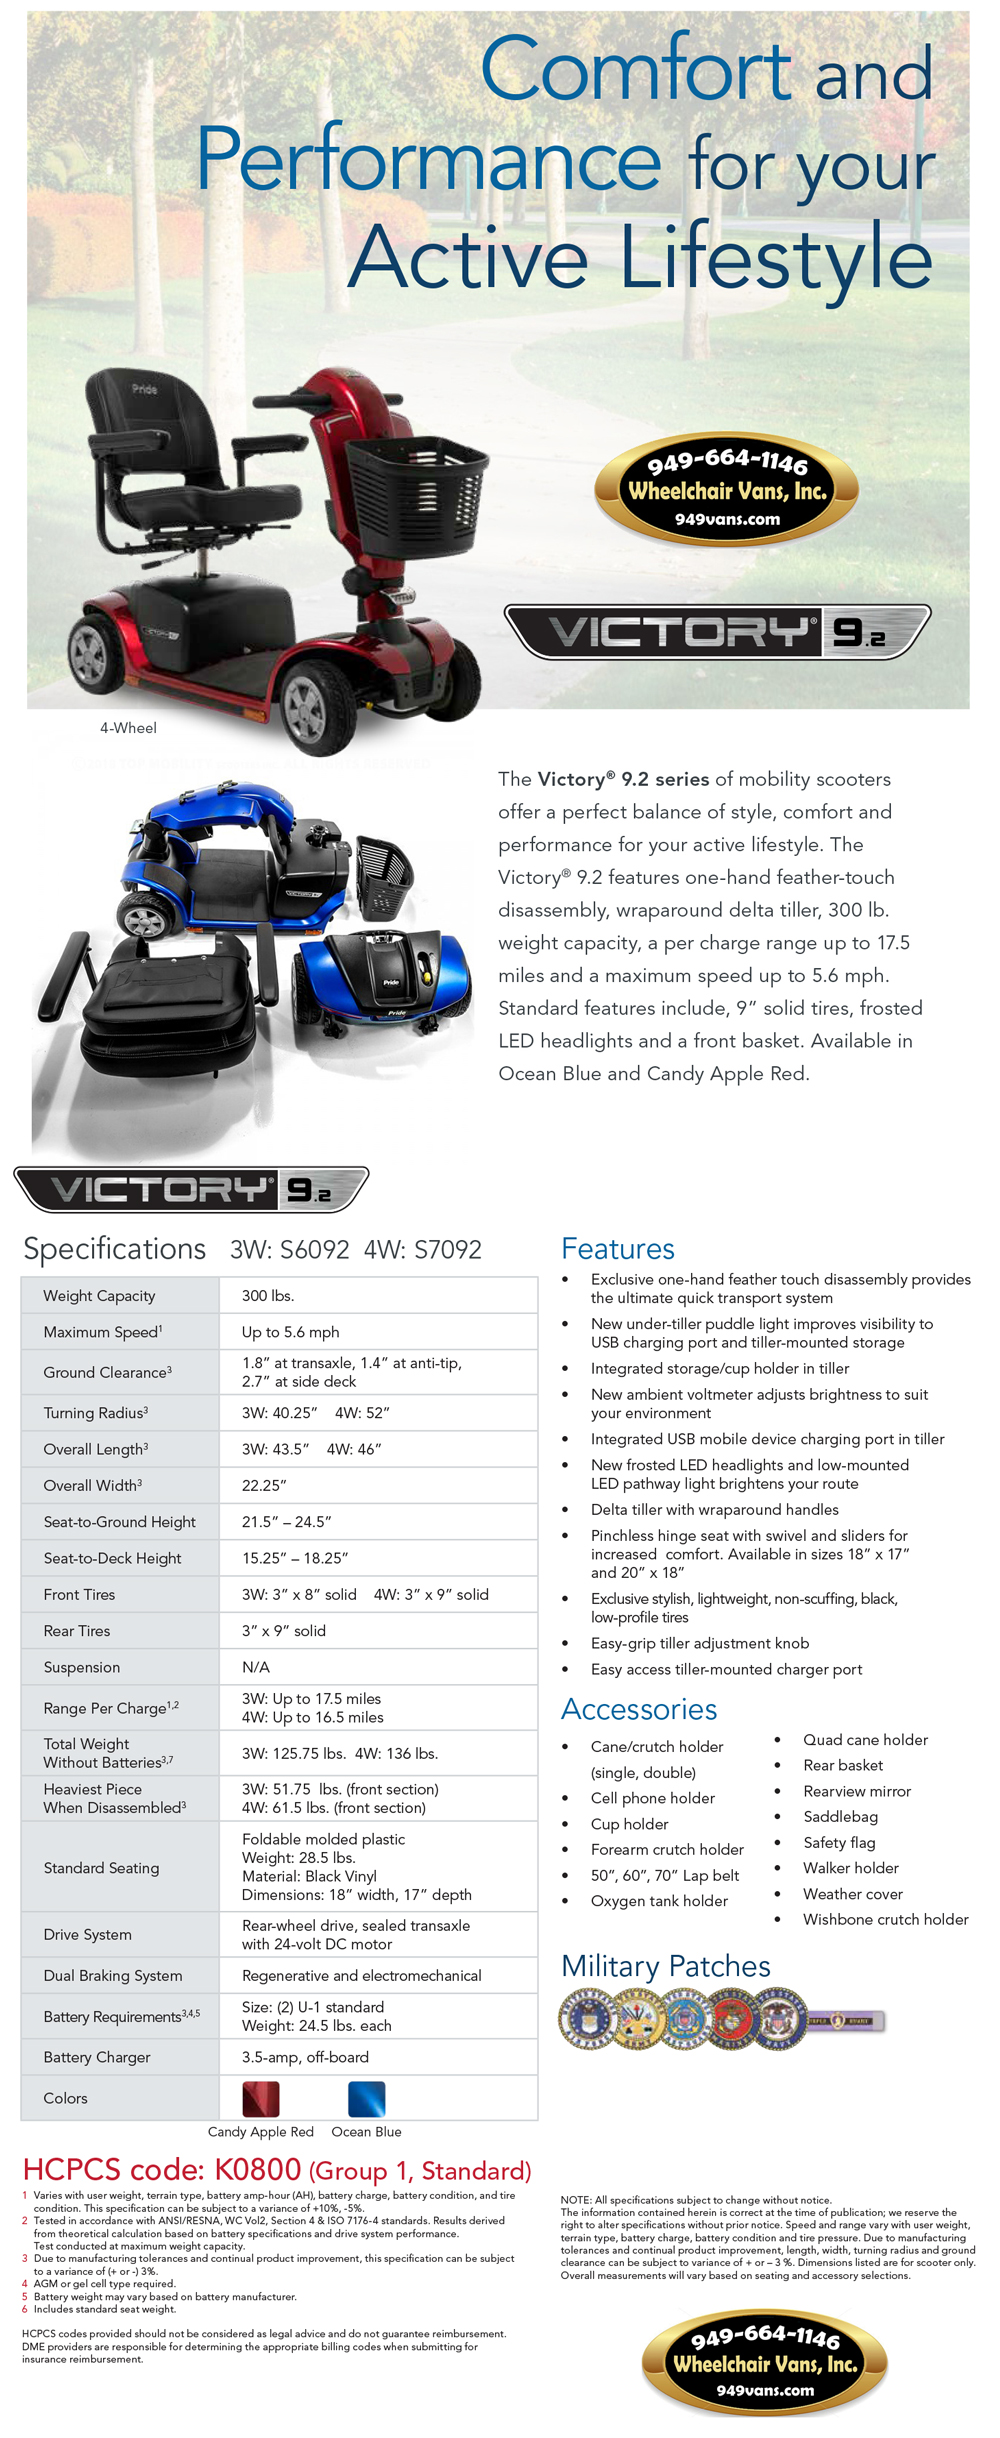 Best Prices on Pride Mobility Victory 9.2 4 Wheel Mobility Scooter Mobility Sales Event